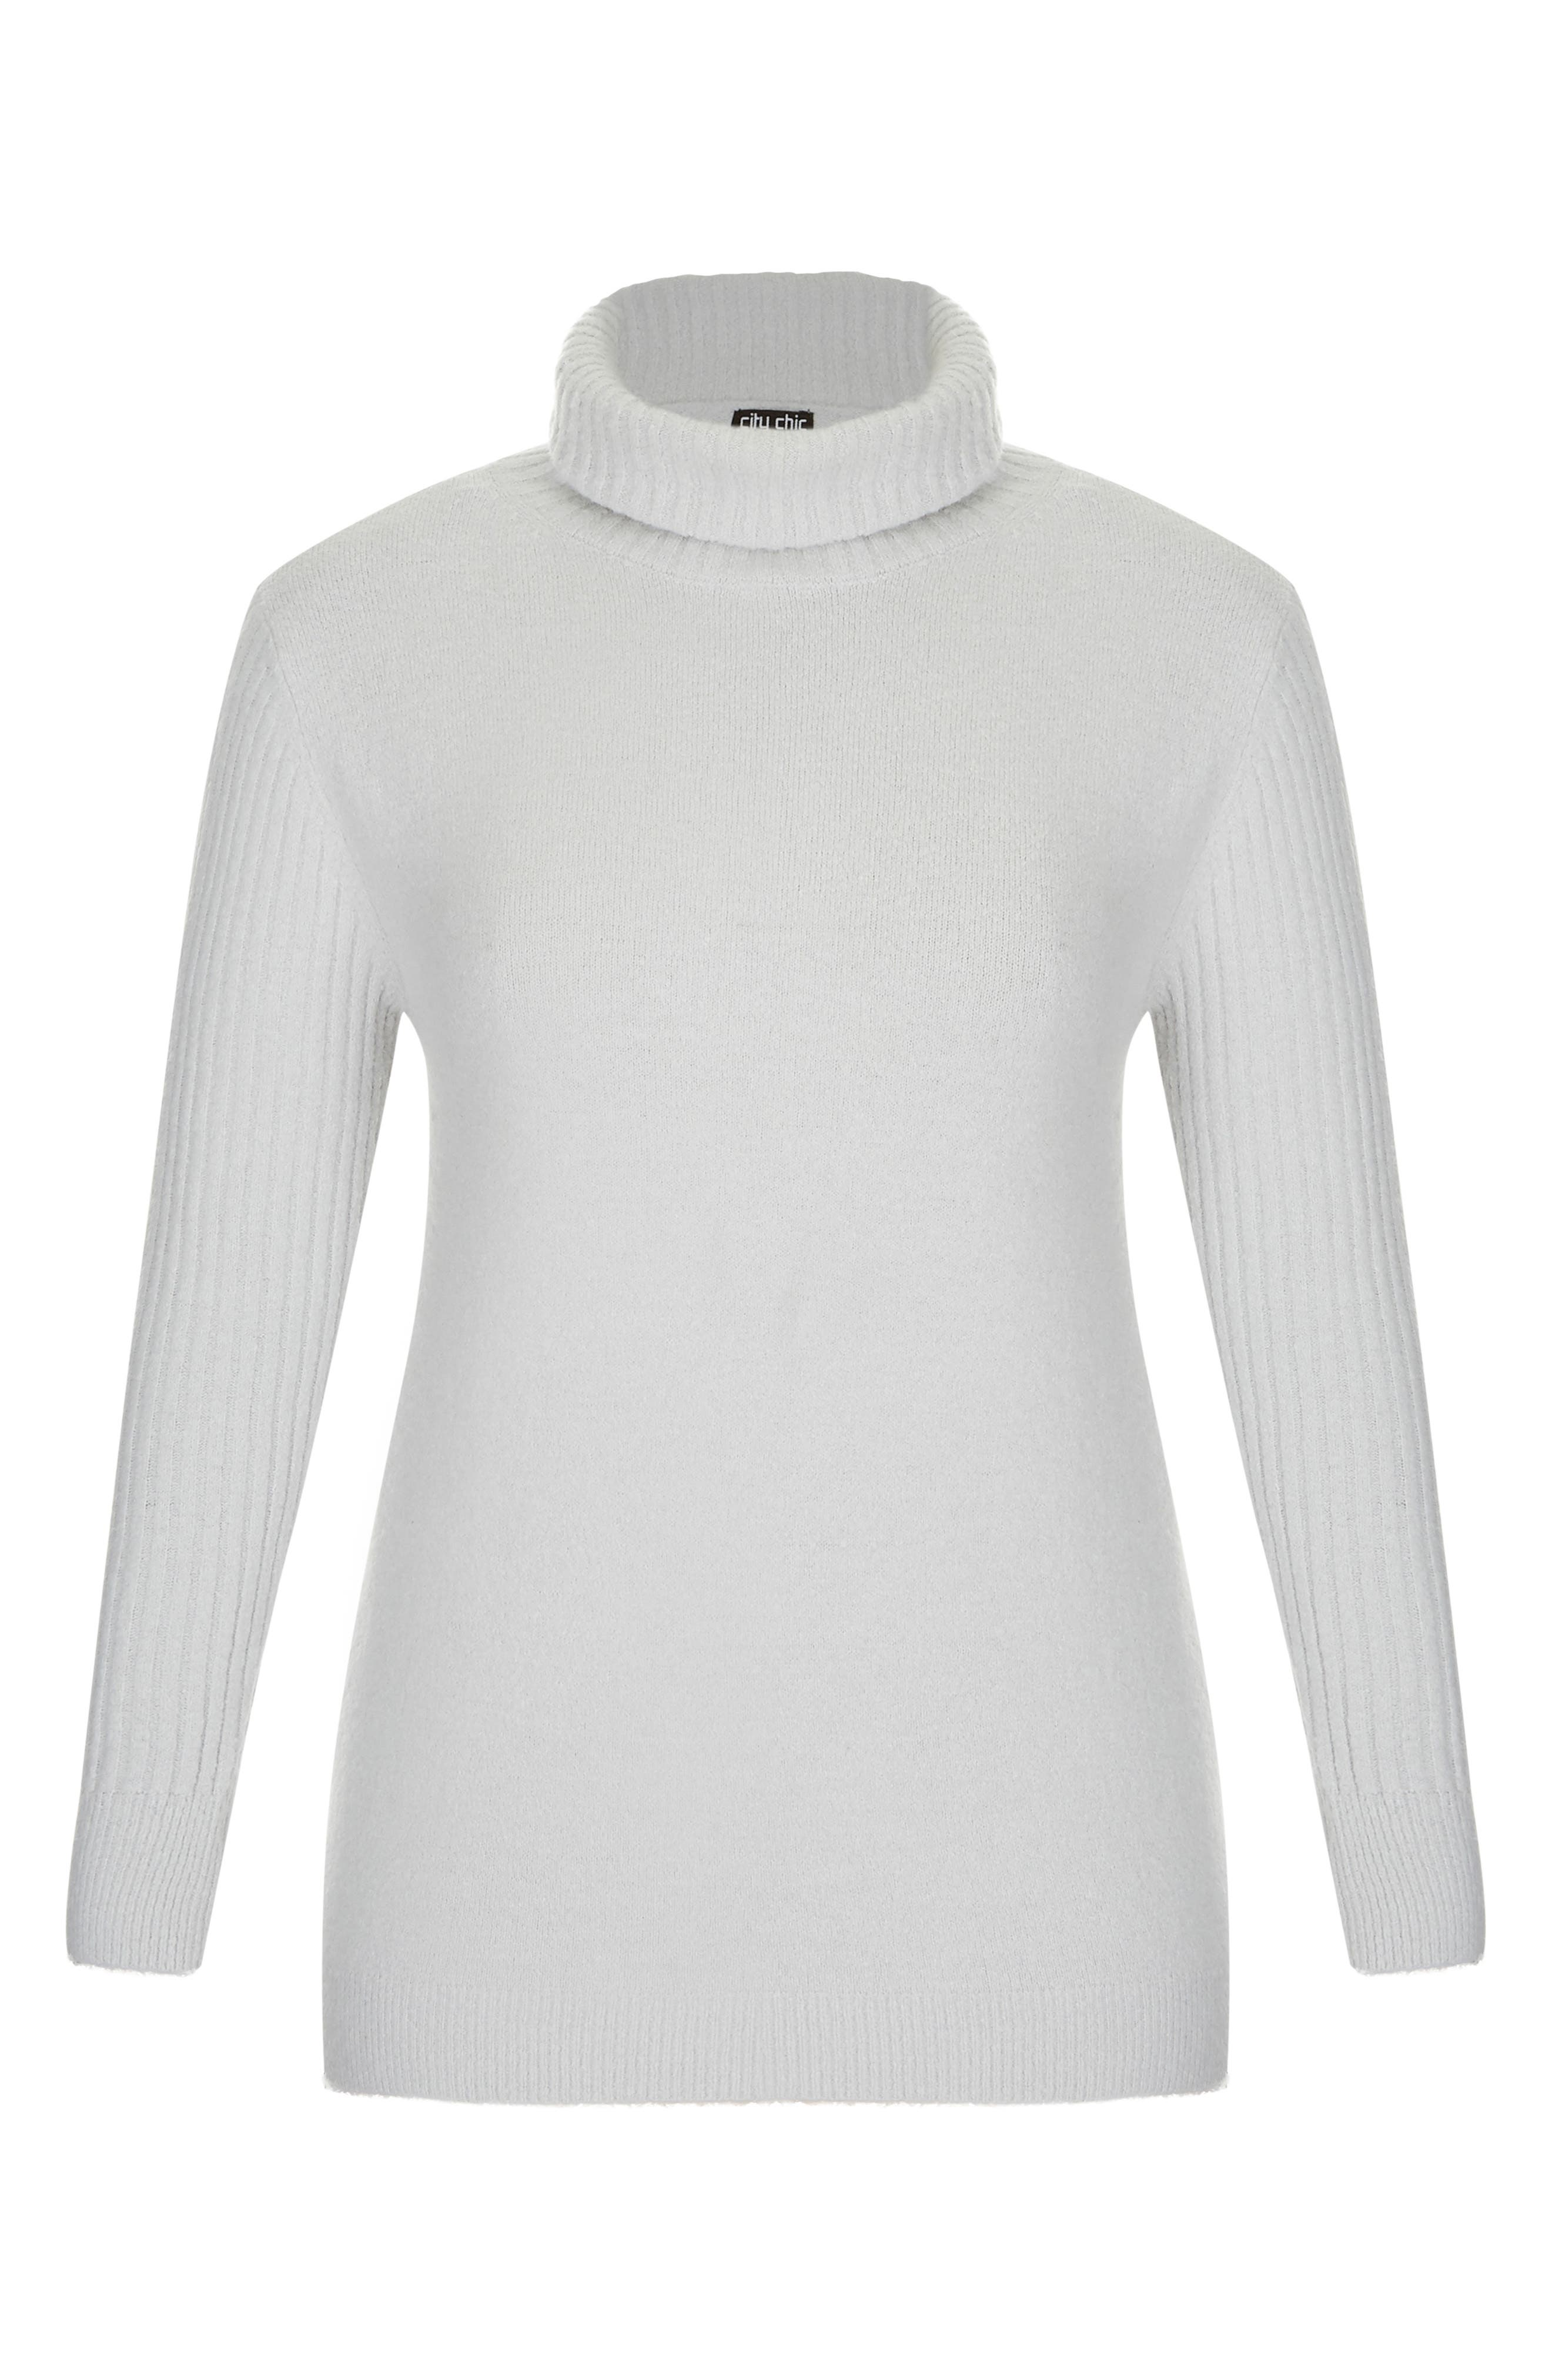 CITY CHIC,                             Turtleneck Sweater,                             Alternate thumbnail 3, color,                             SILVER MARLE